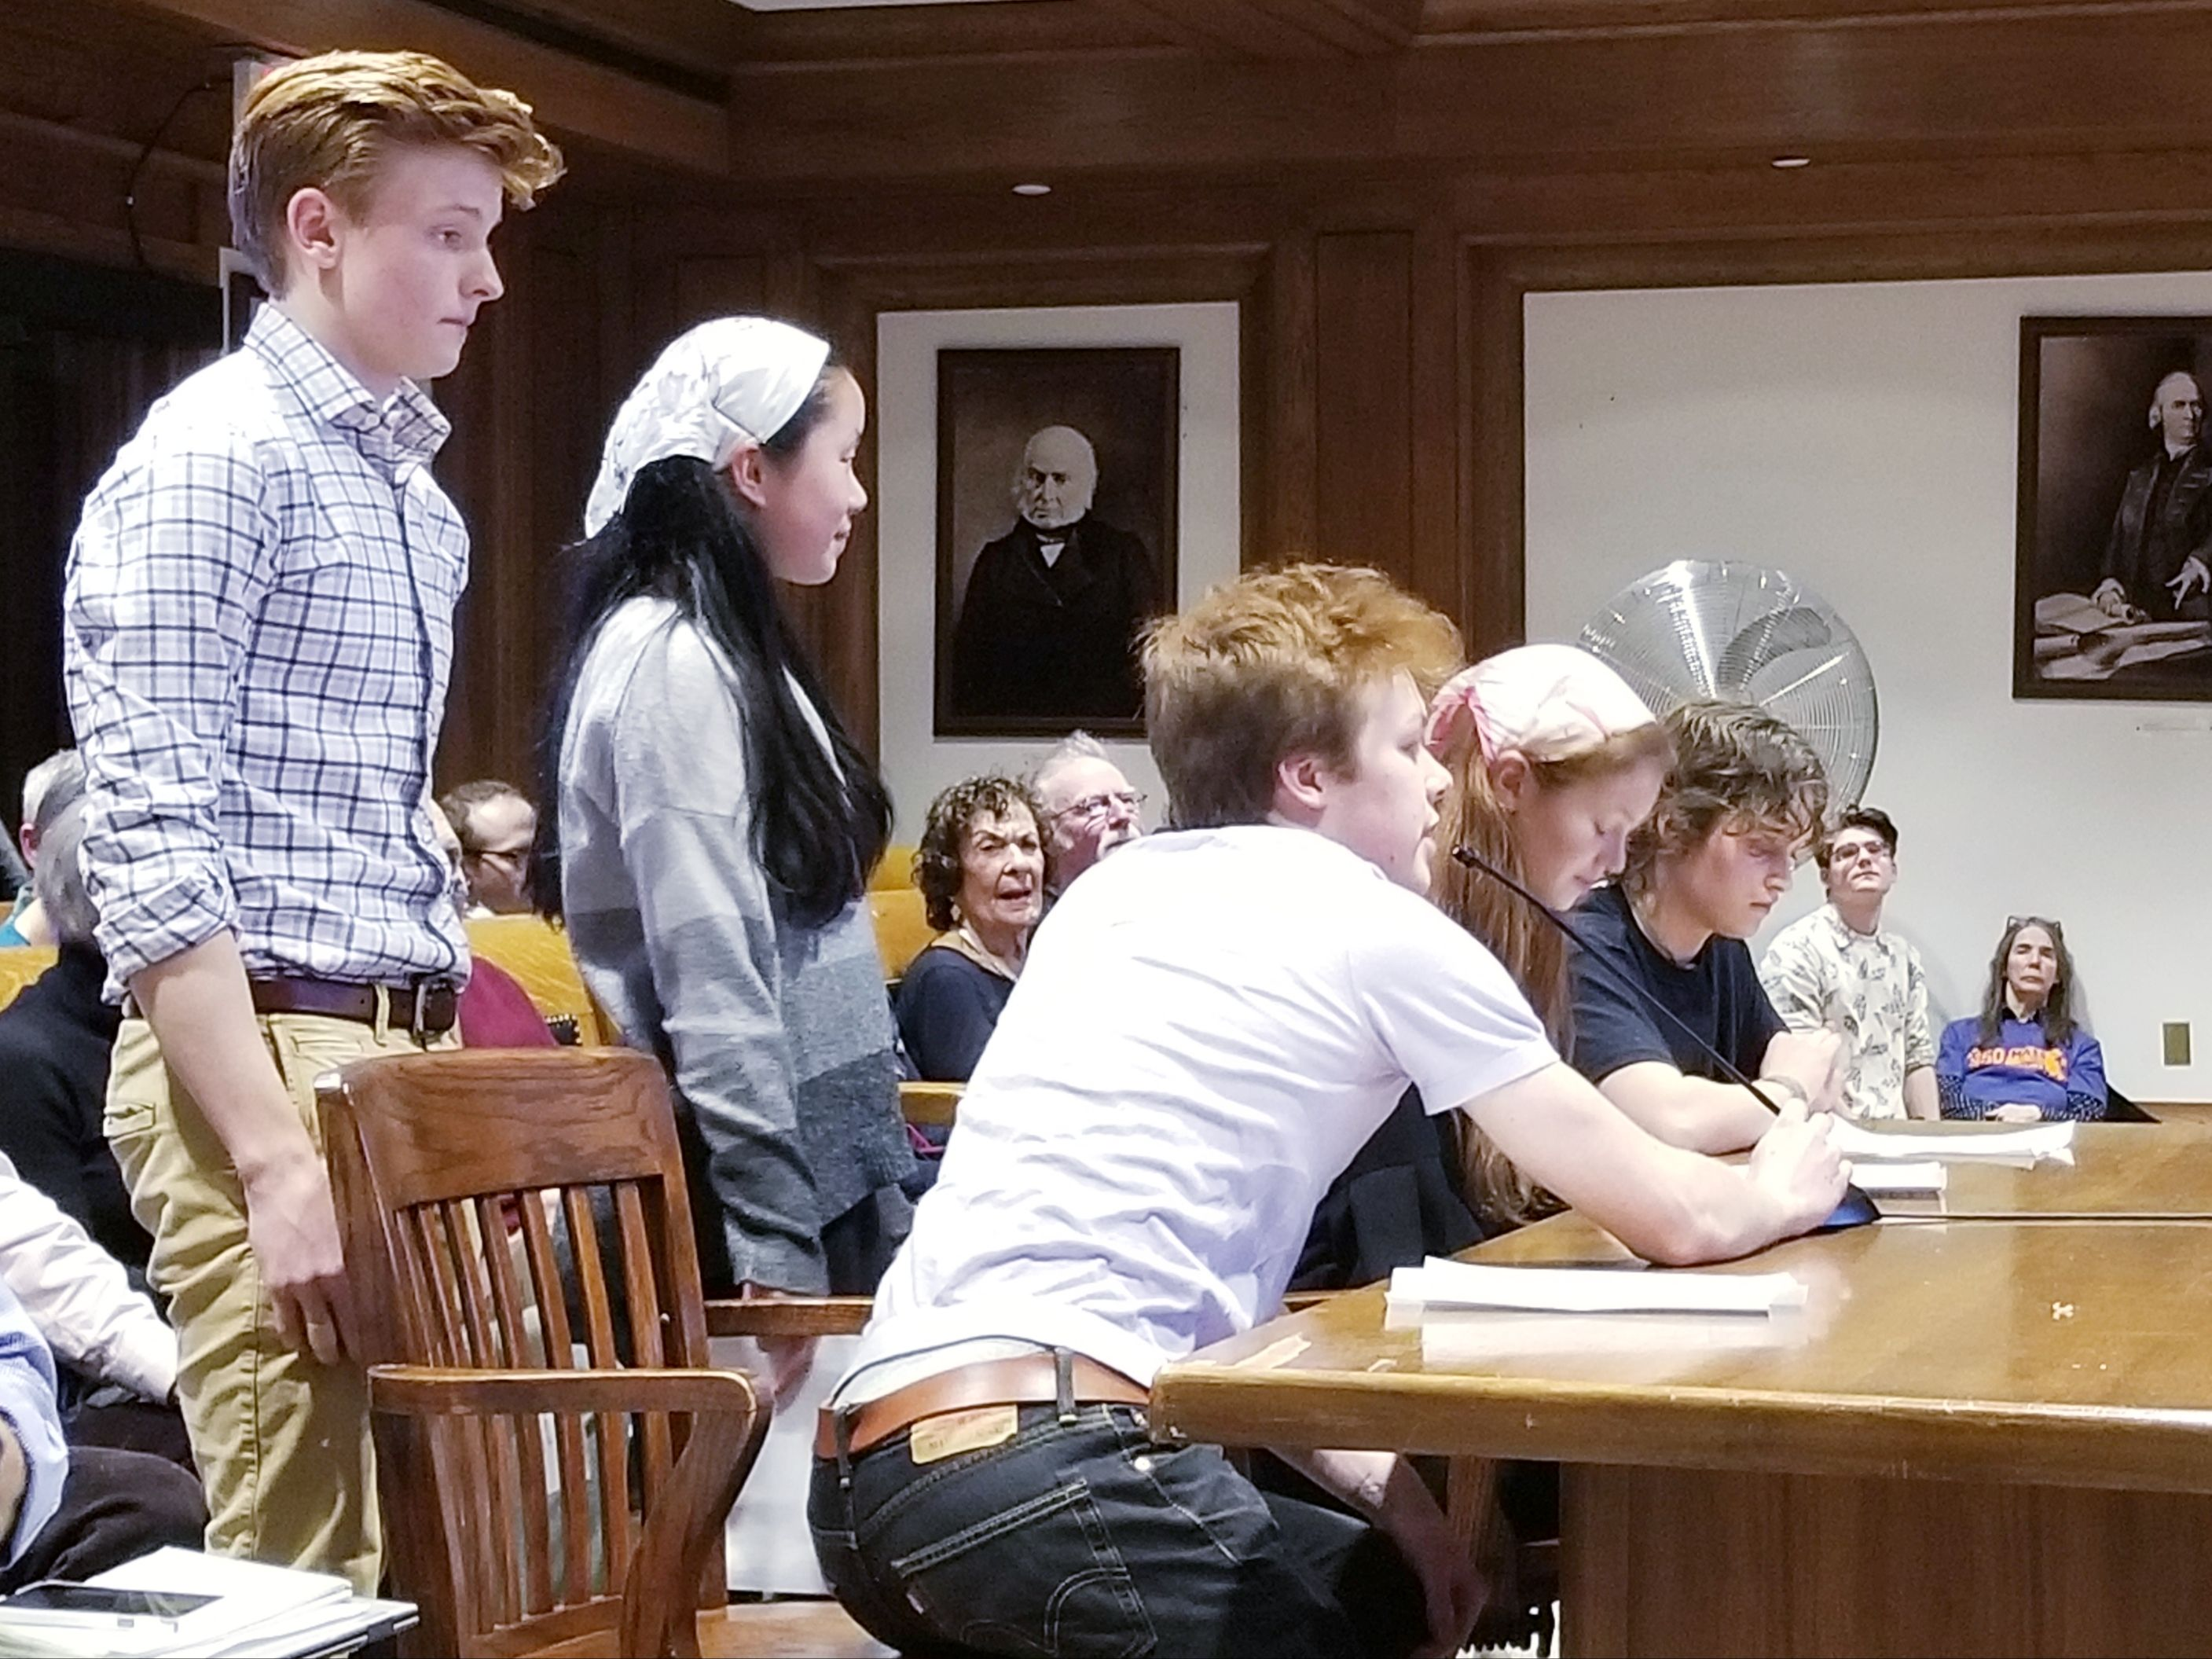 MA_Youth carbon pricing hearing 2020.jpg